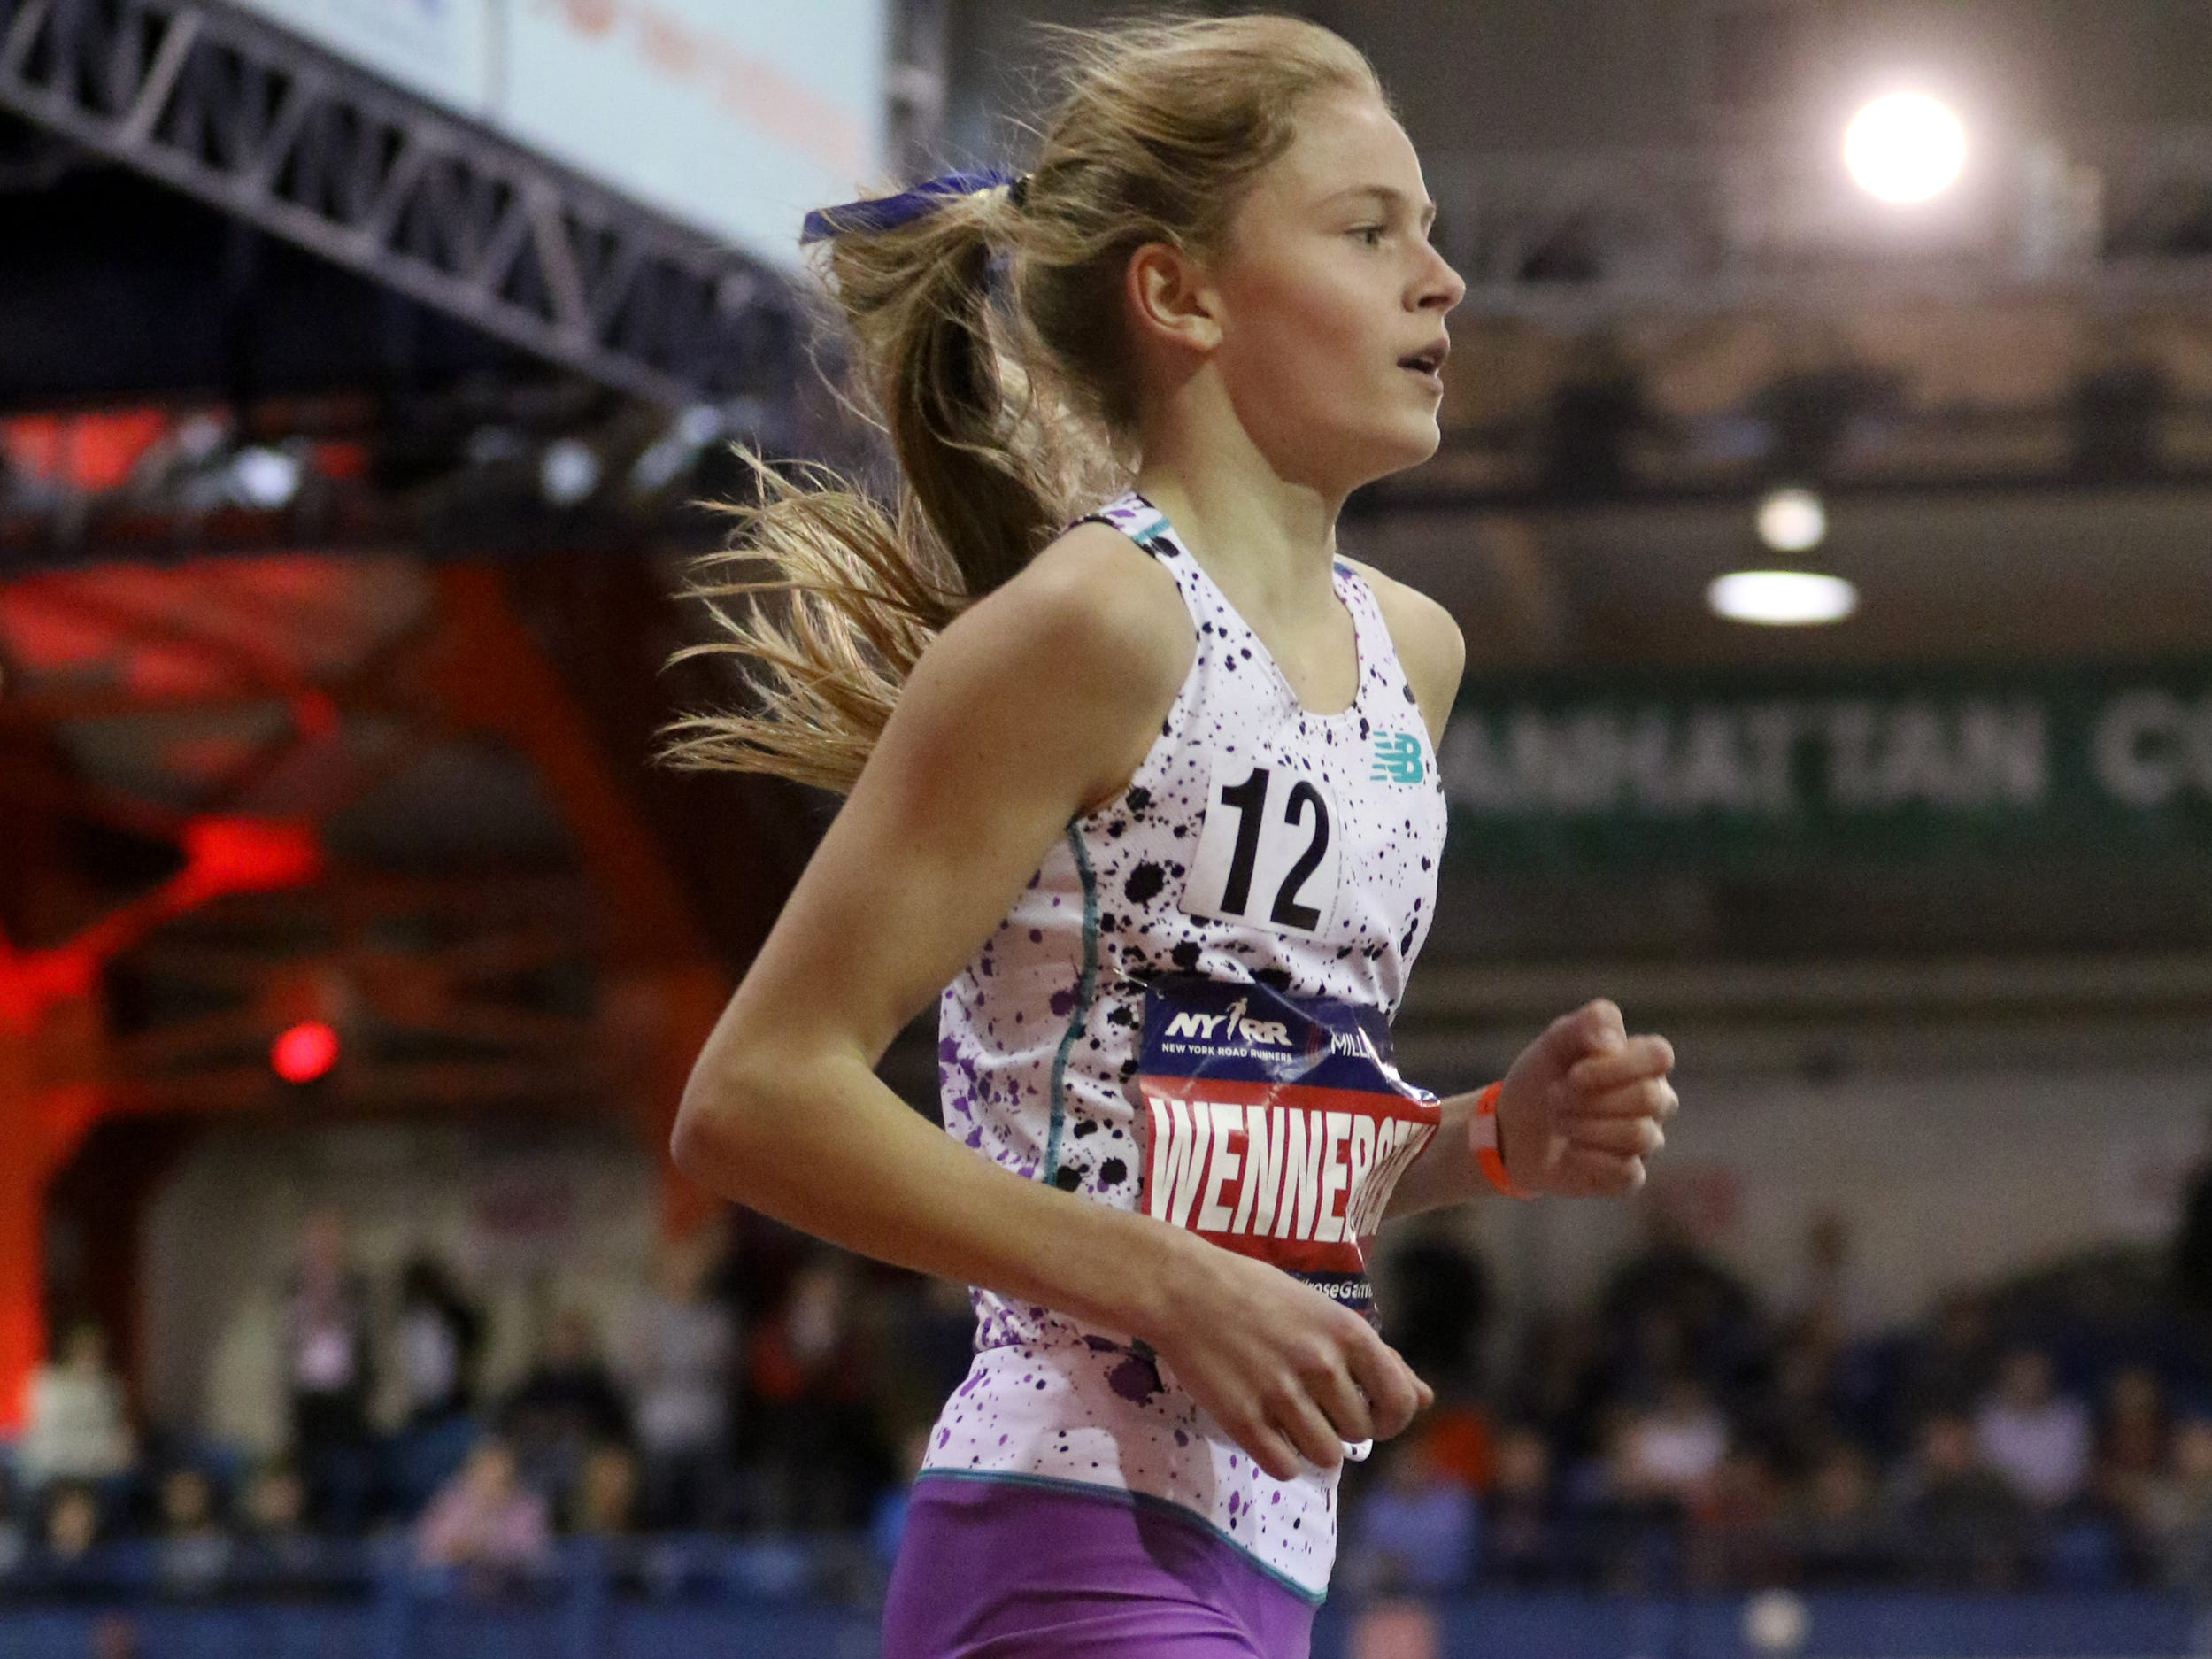 Camryn Wennersten, of Ridgewood, runs the New Balance Invitational Junior Girls' Mile.  Saturday, February 9, 2019